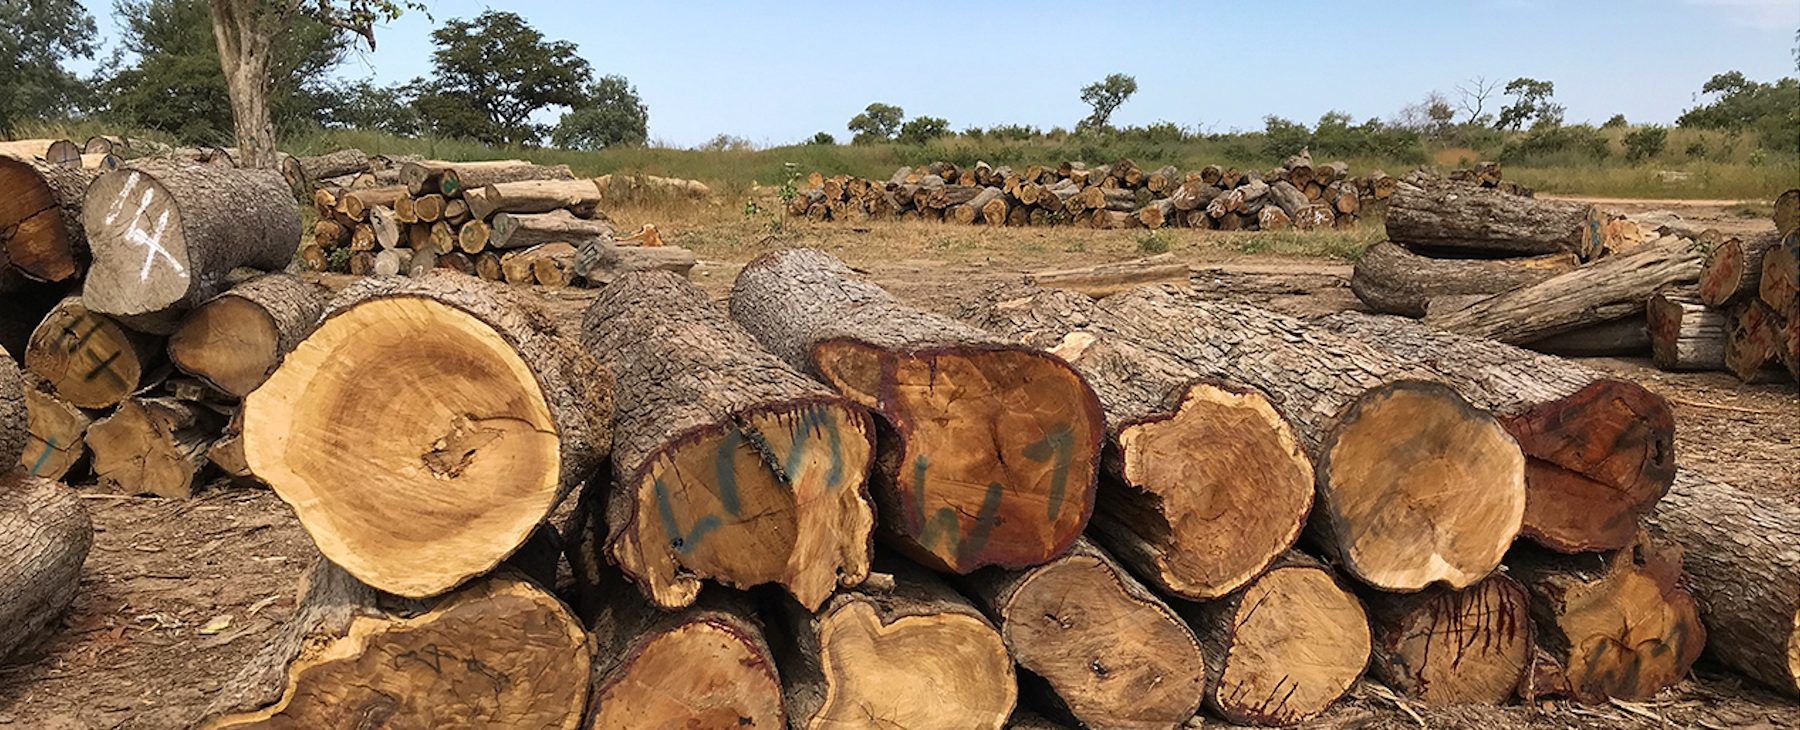 Westwood: dealing in conflict timber across The Gambia and Senegal